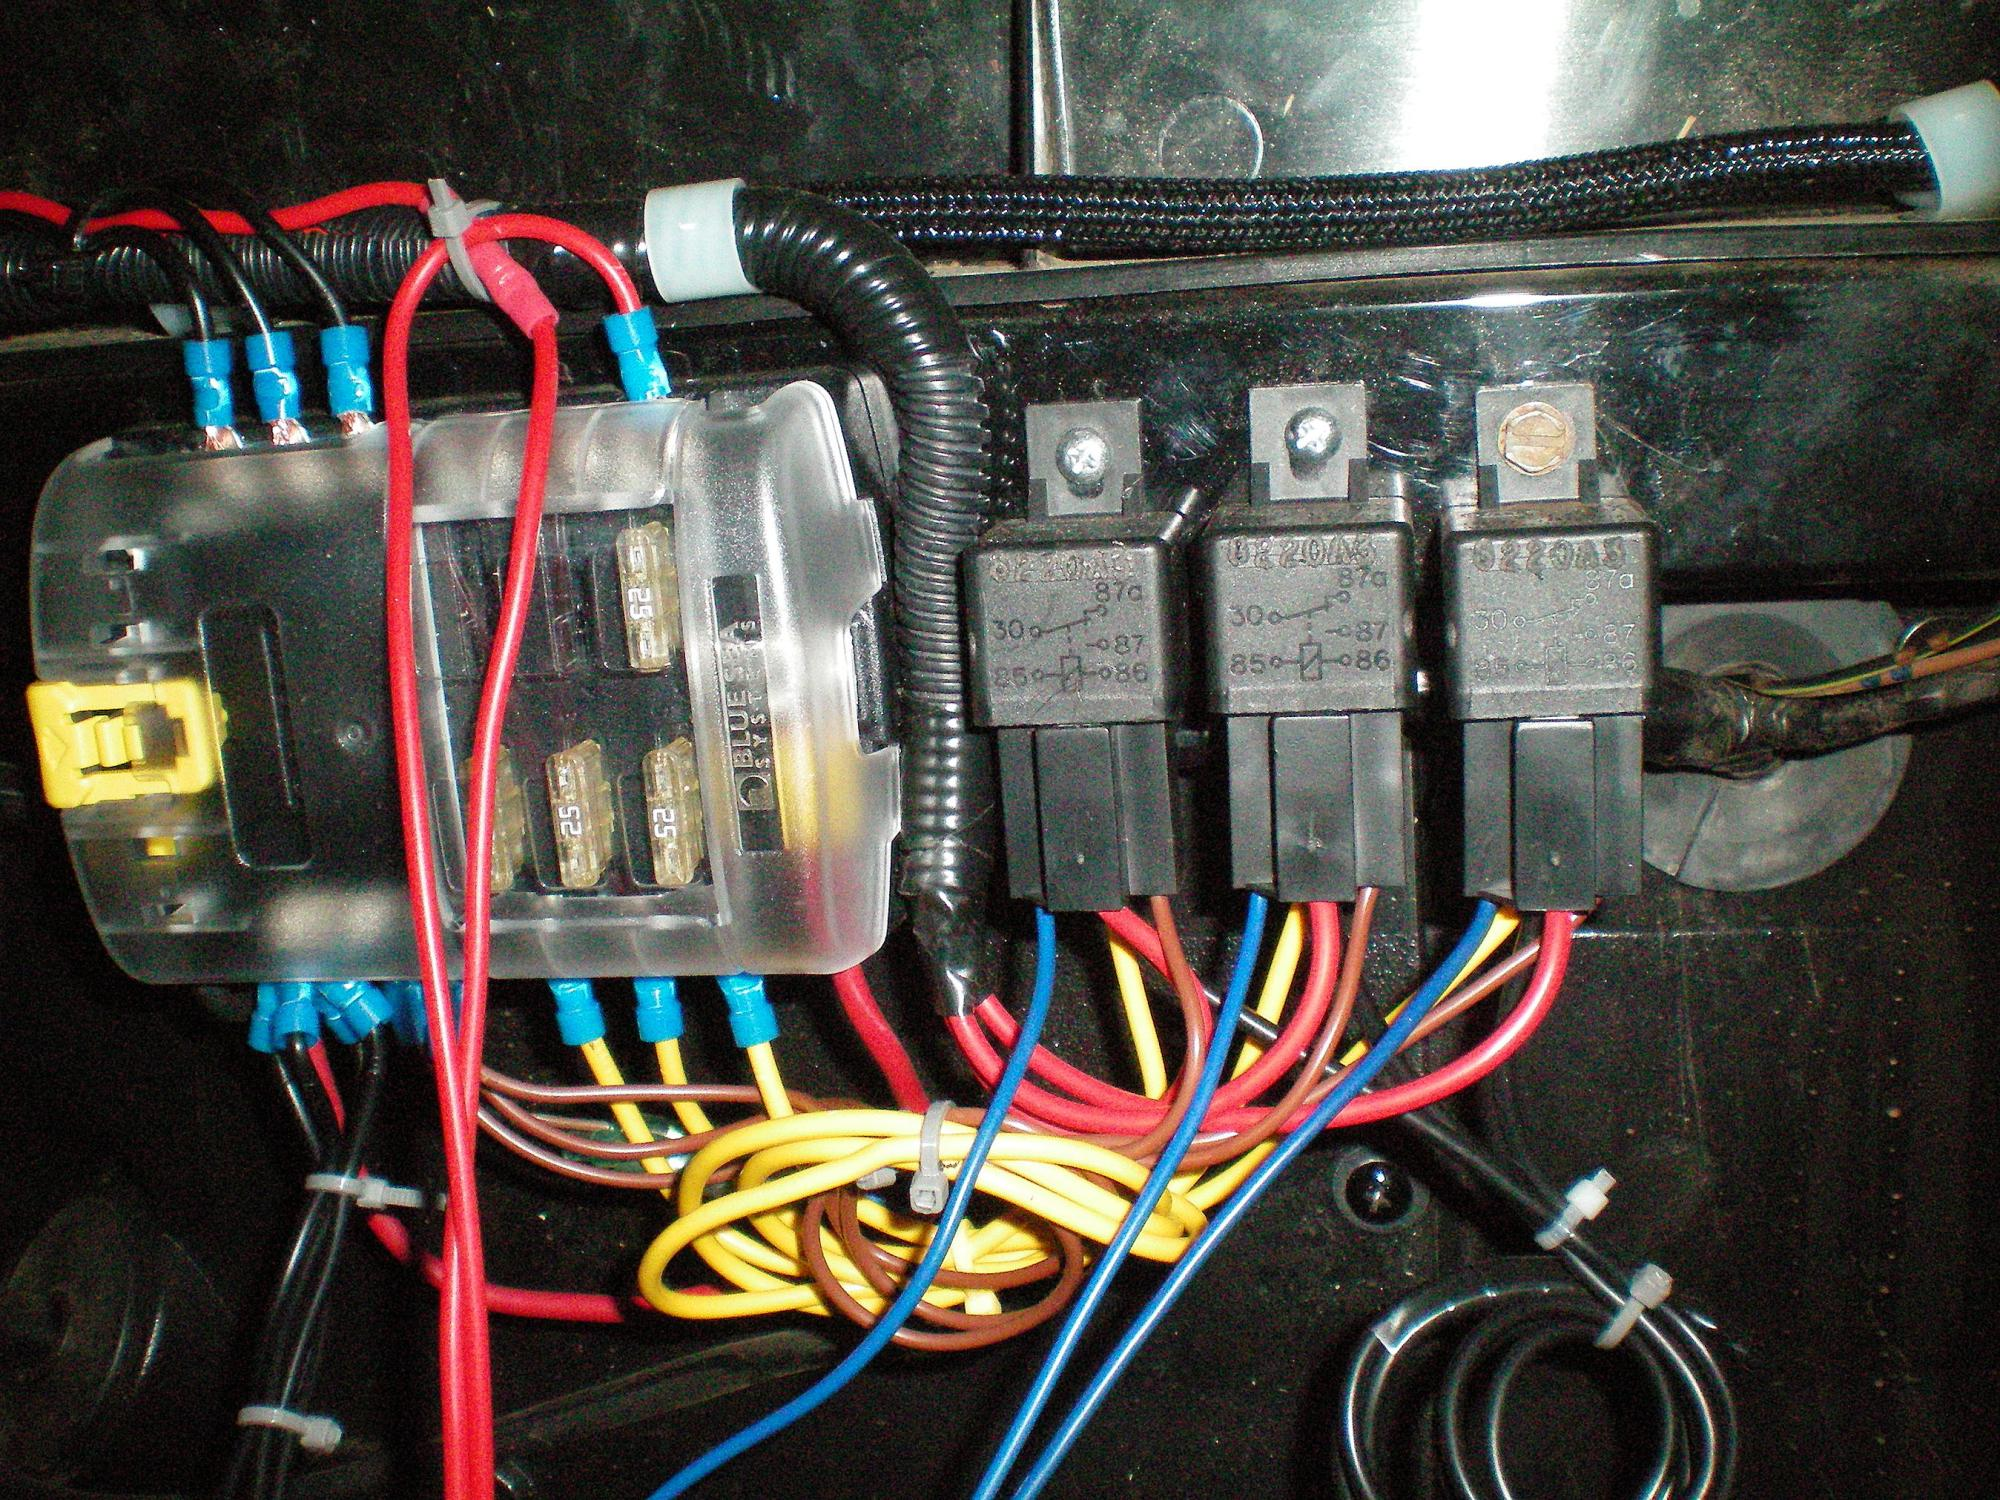 hight resolution of electrical wiring kawasaki teryx forums kawasaki utv teryx forumclick image for larger version name 100 0282 jpg